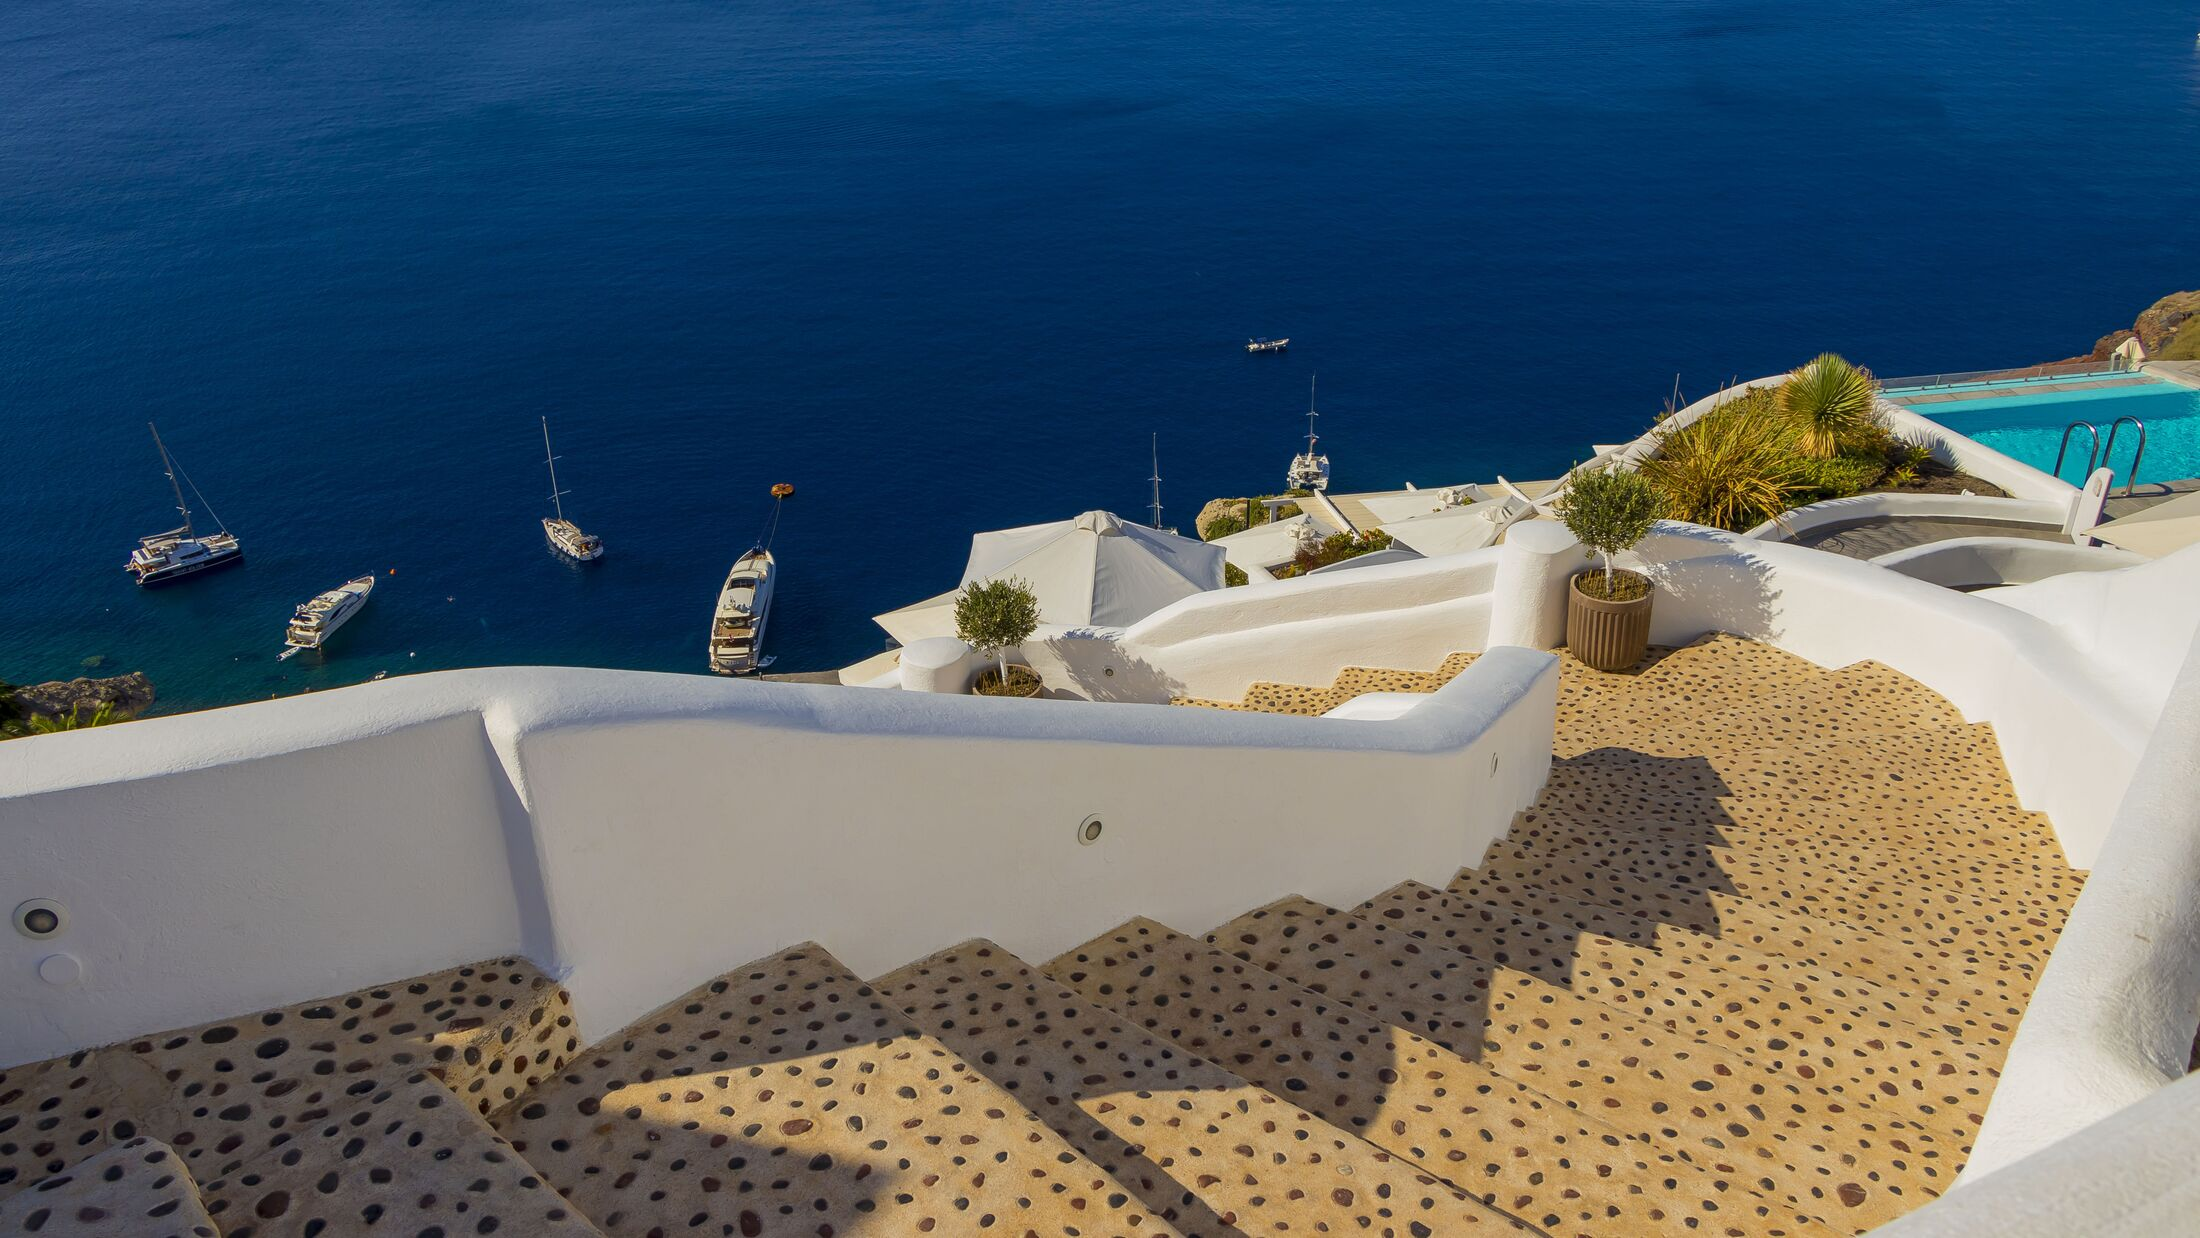 Santorini Sea View from a hillside stairway